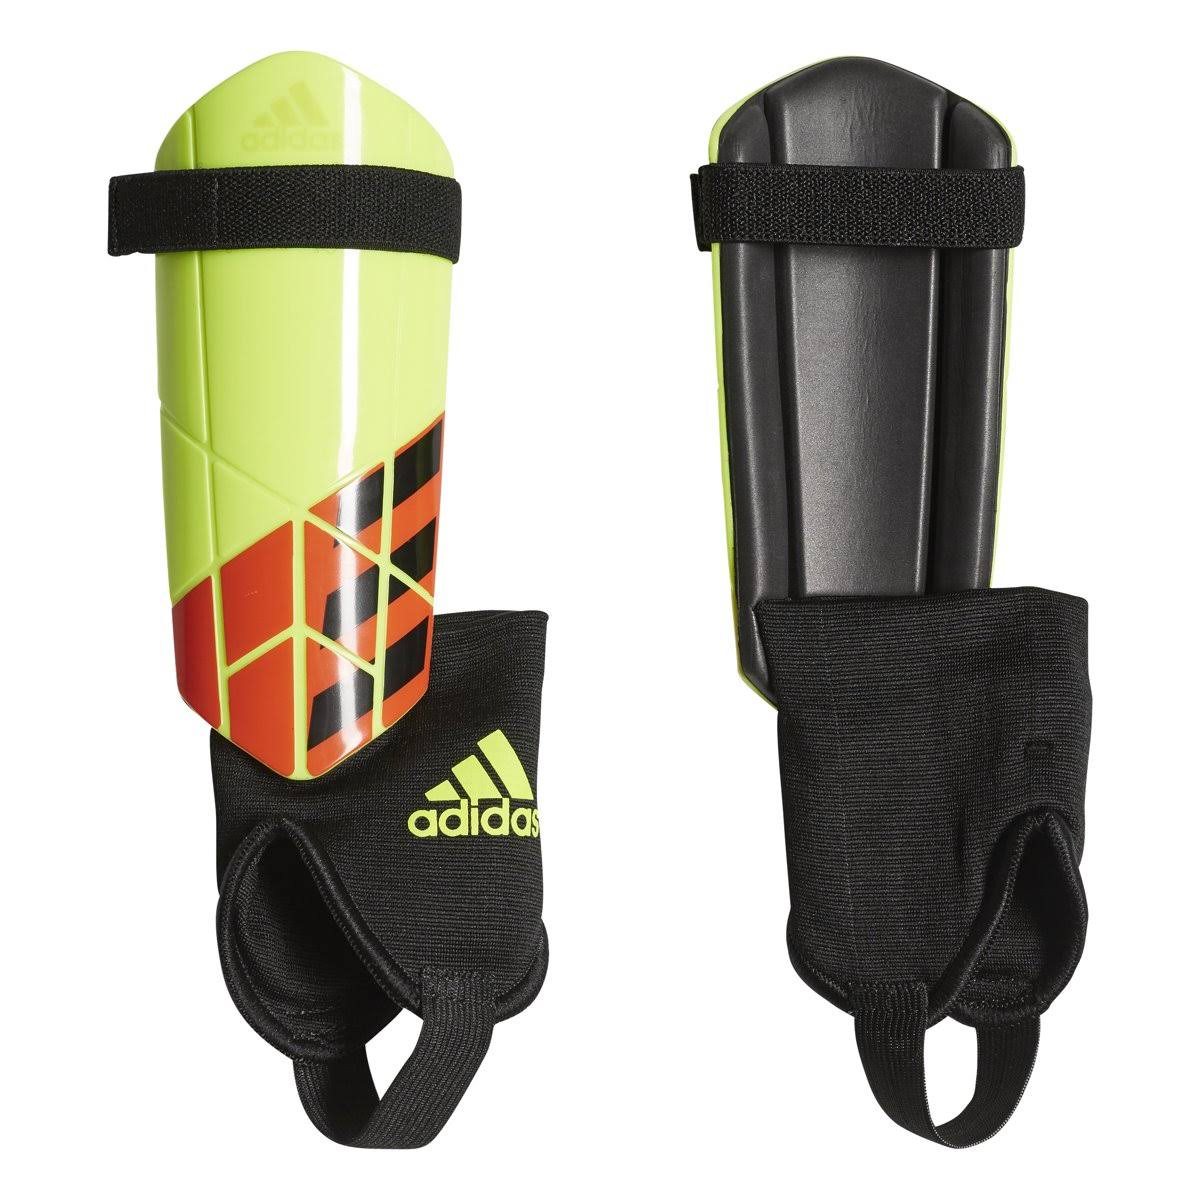 Adidas Youth x Shin Guards Yellow / Large